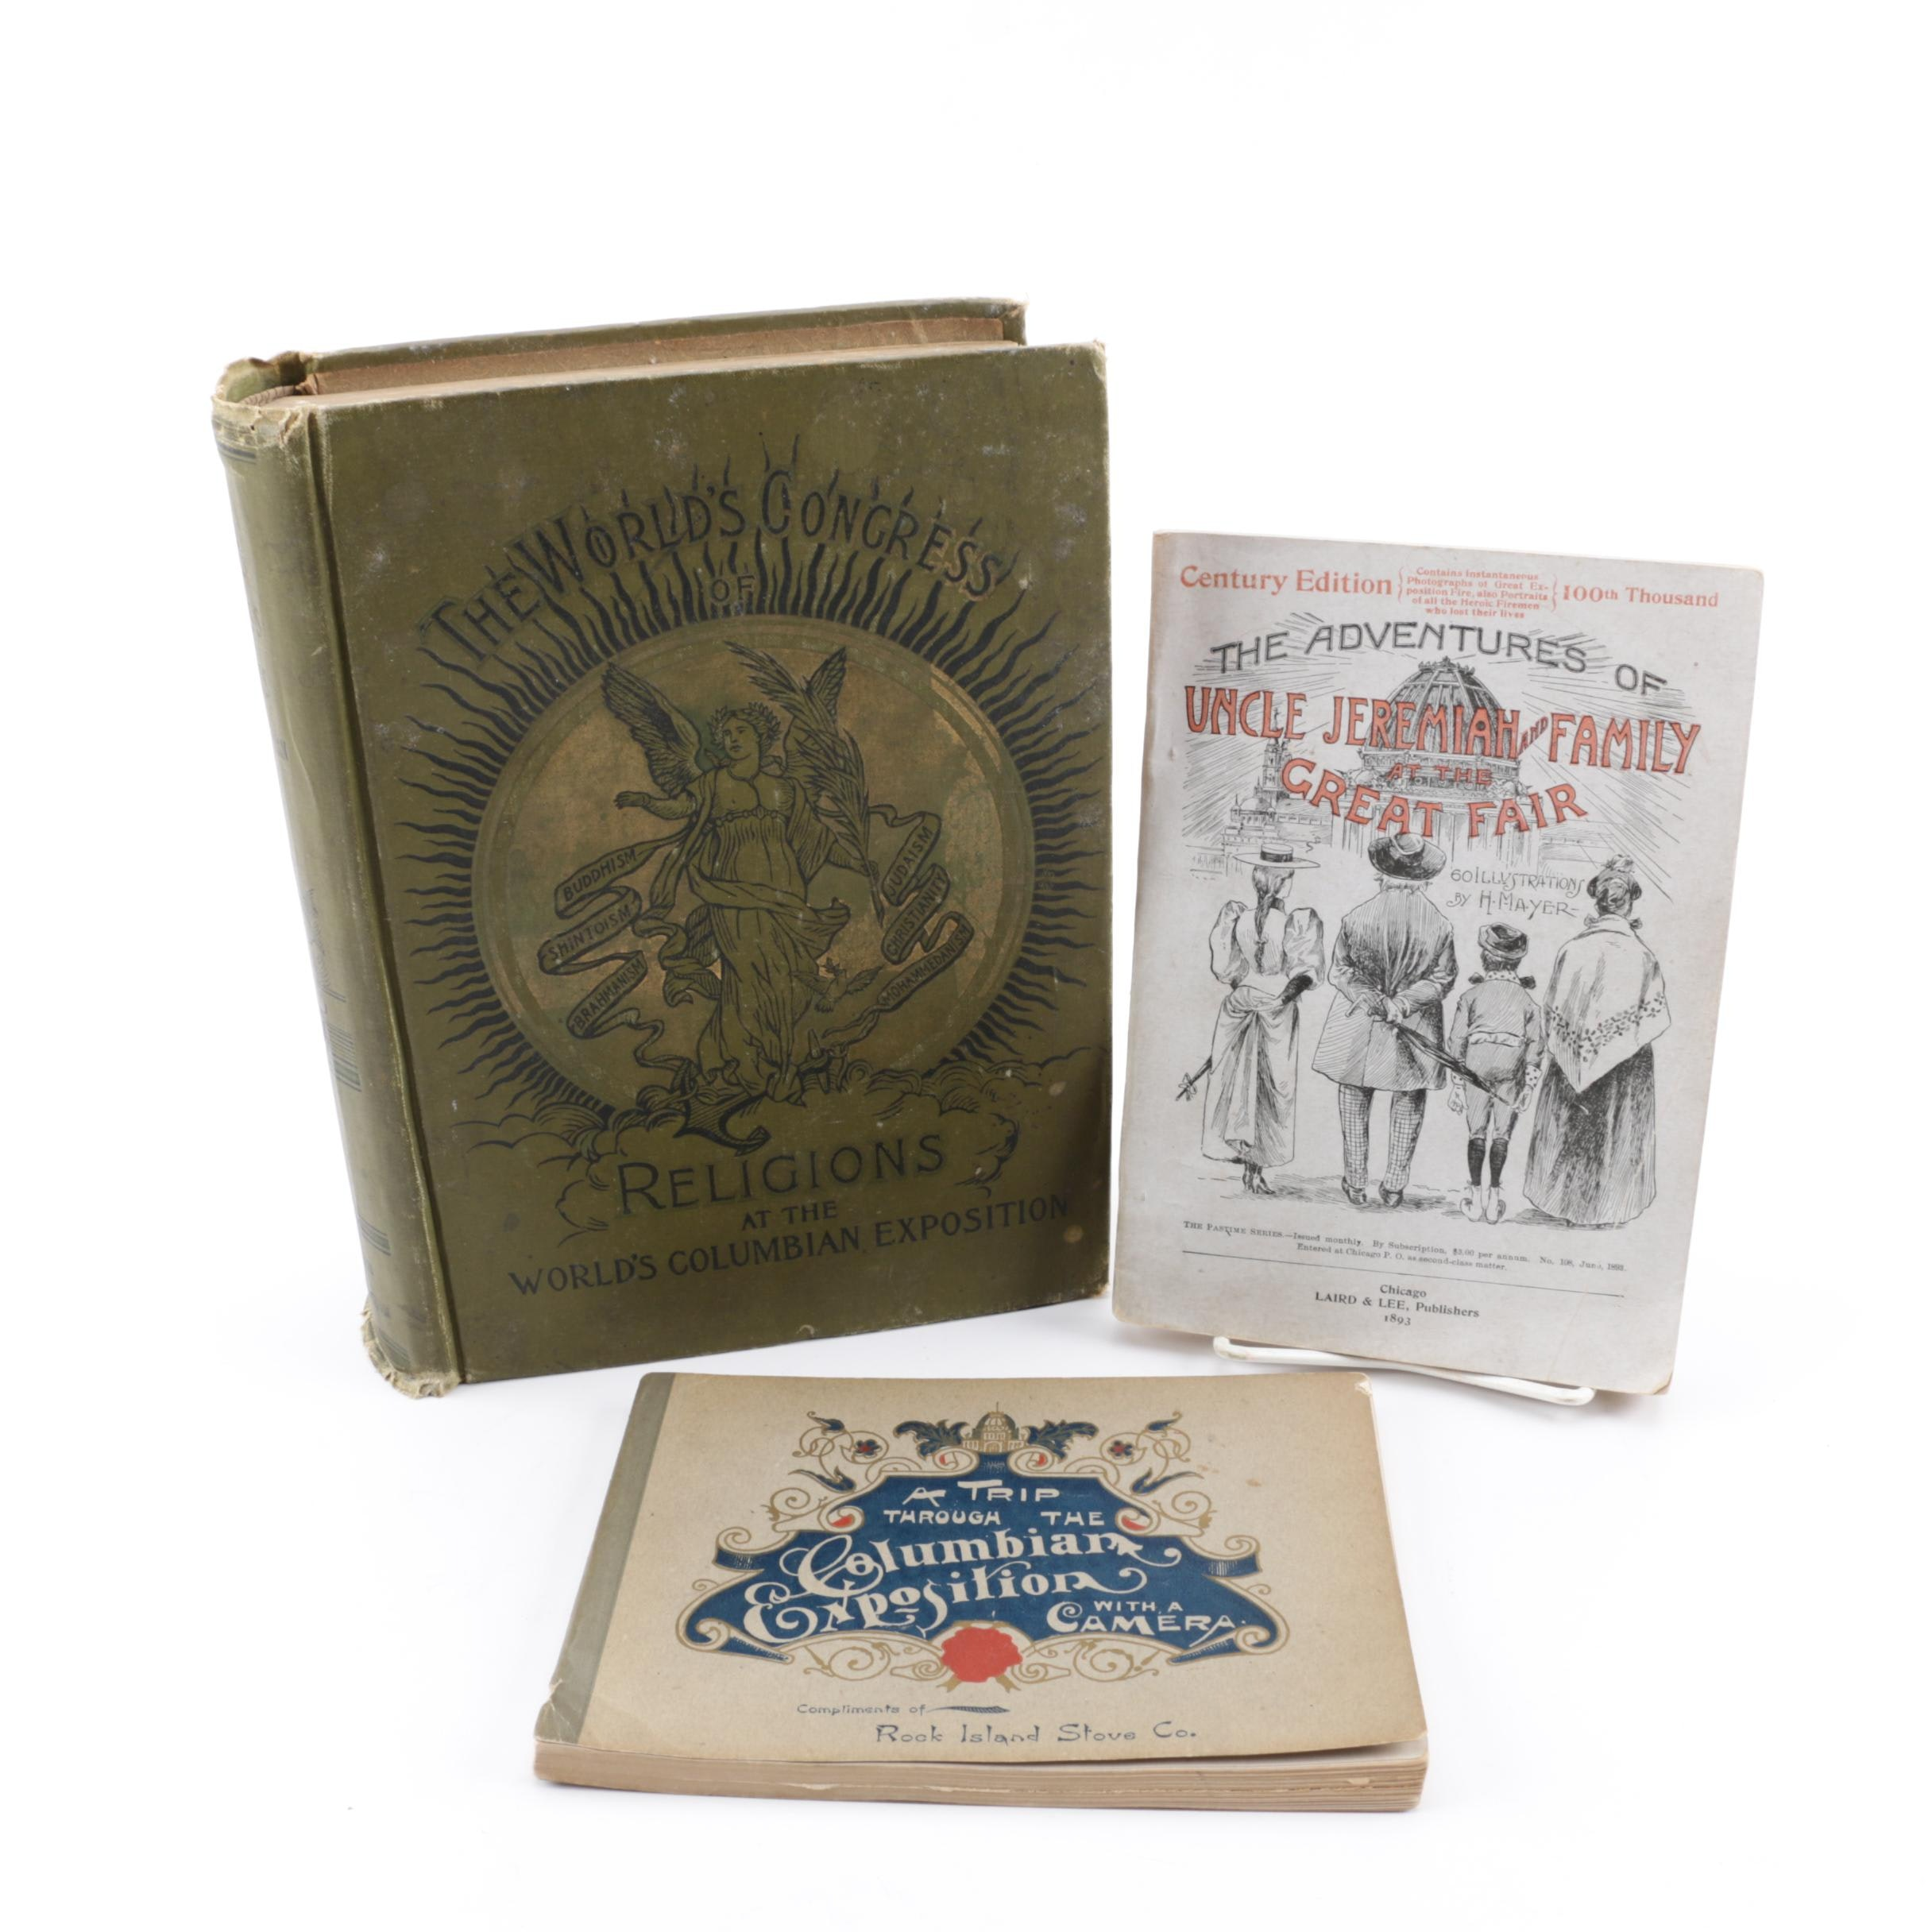 """1893 """"A Trip Through the Columbian Exposition"""" by Thos. Harrison and Other Books"""